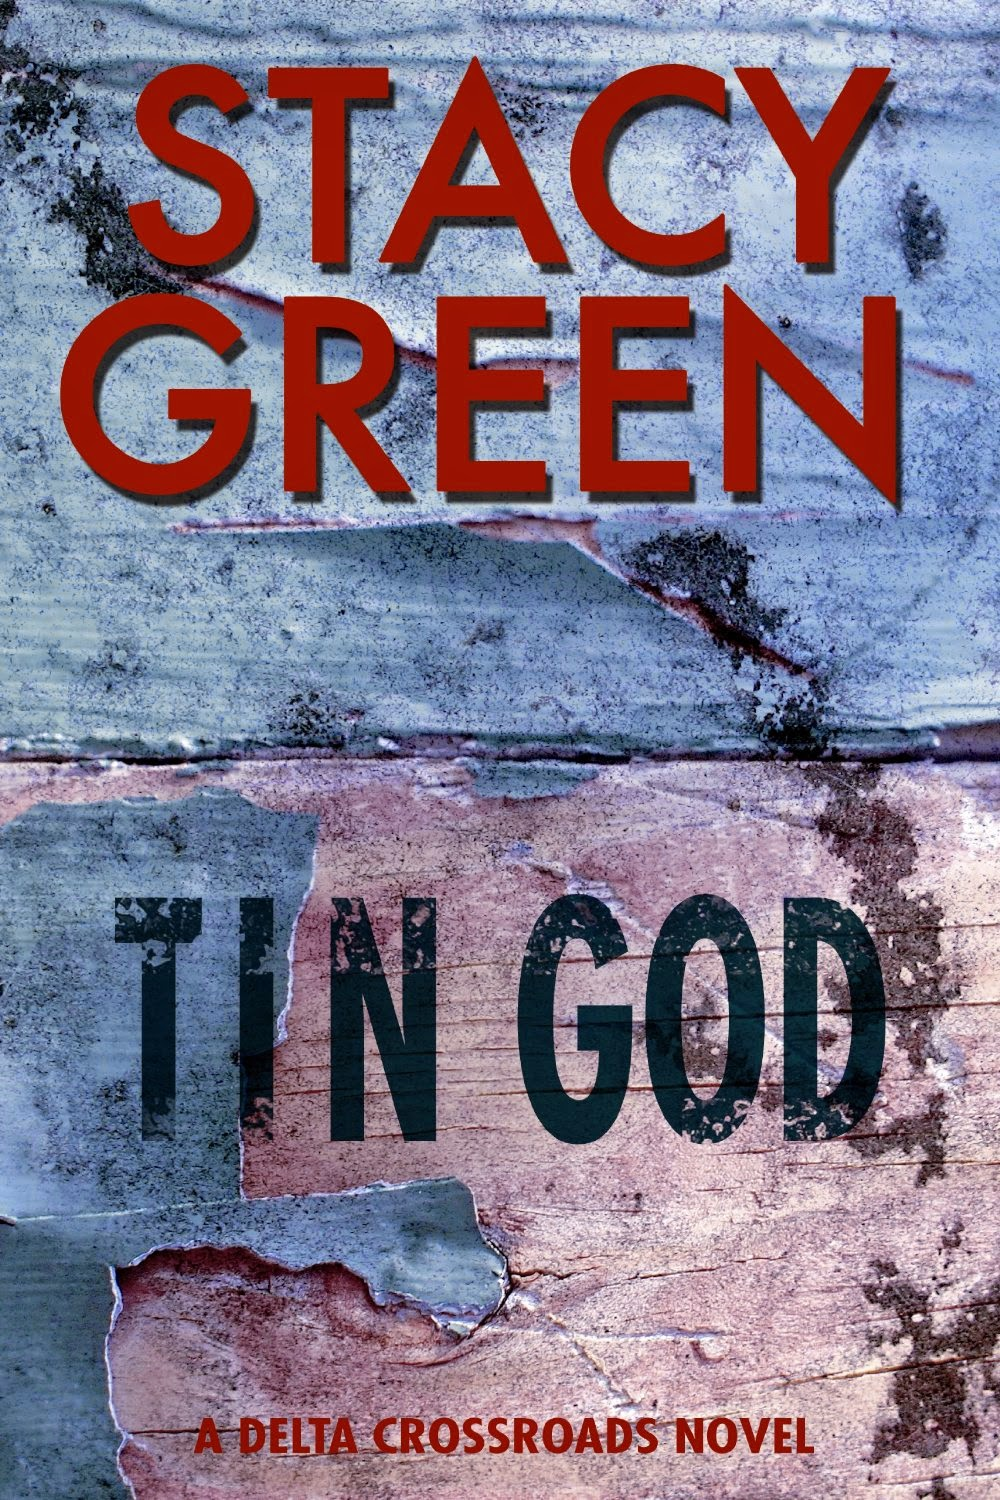 http://www.amazon.com/Tin-Delta-Crossroads-Trilogy-Book-ebook/dp/B00C7SKV1G/ref=sr_1_1?s=books&ie=UTF8&qid=1429794204&sr=1-1&keywords=tin+god